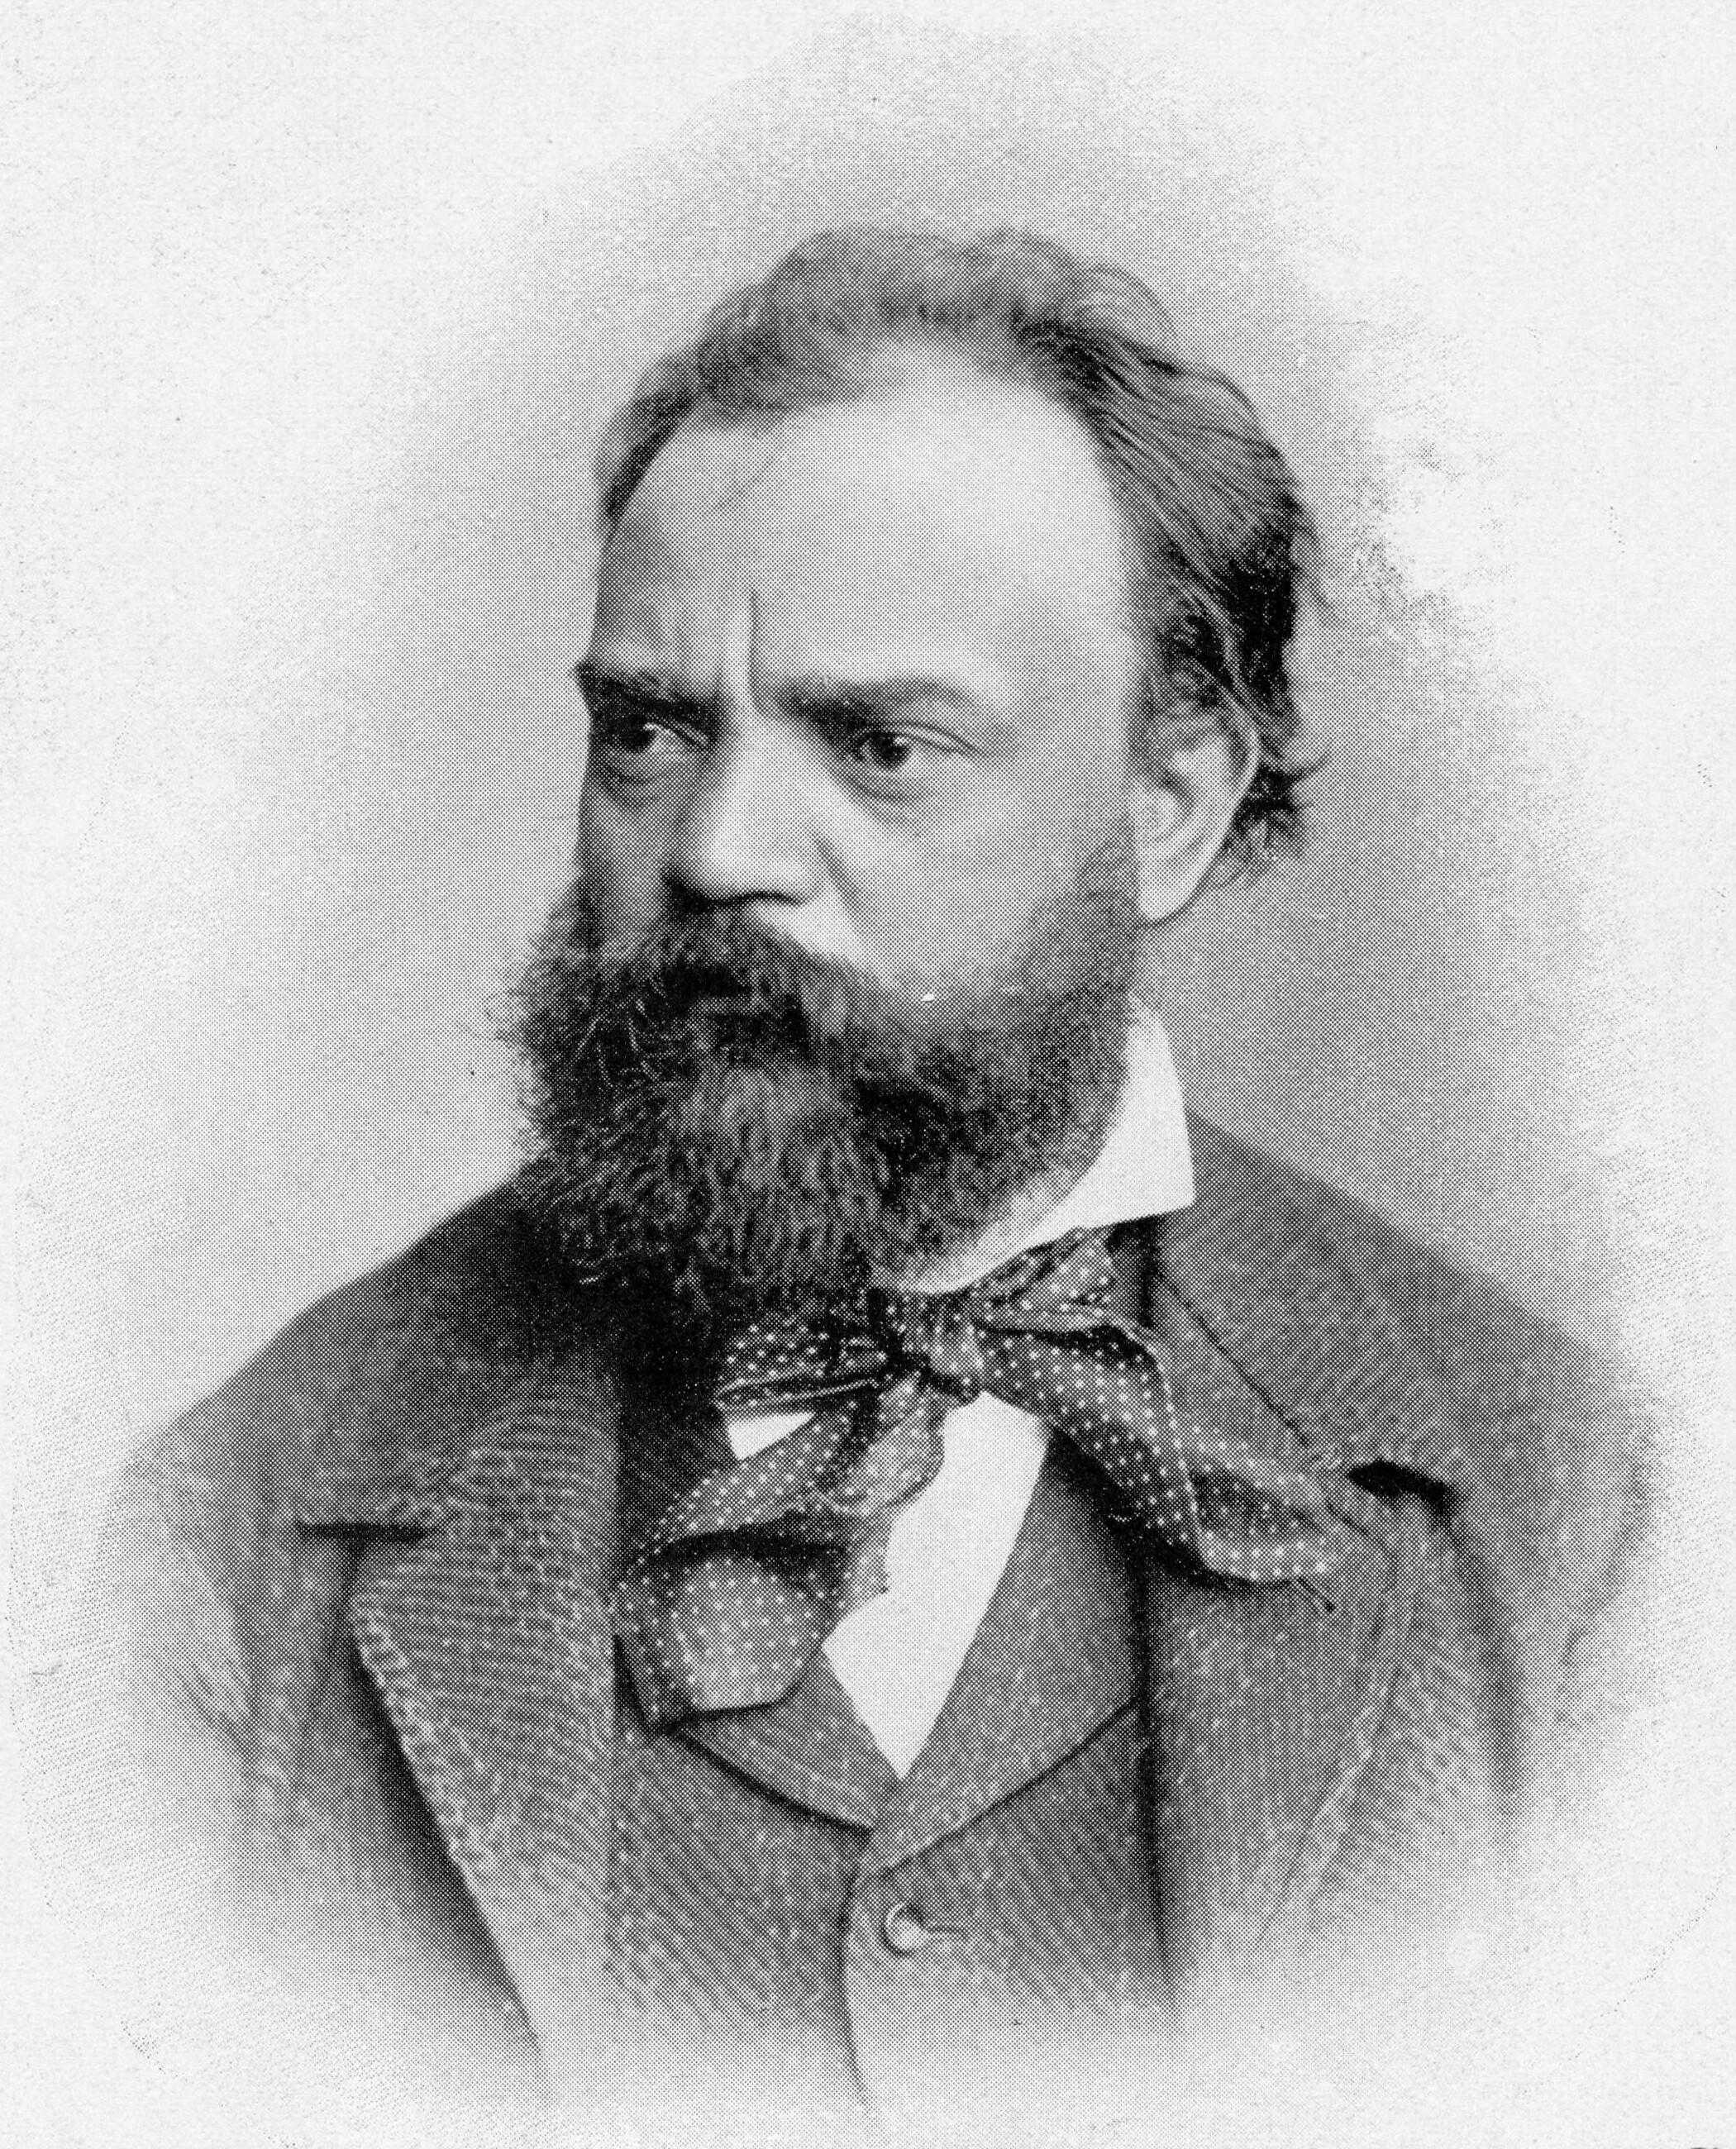 http://upload.wikimedia.org/wikipedia/commons/1/12/Dvorak.jpg